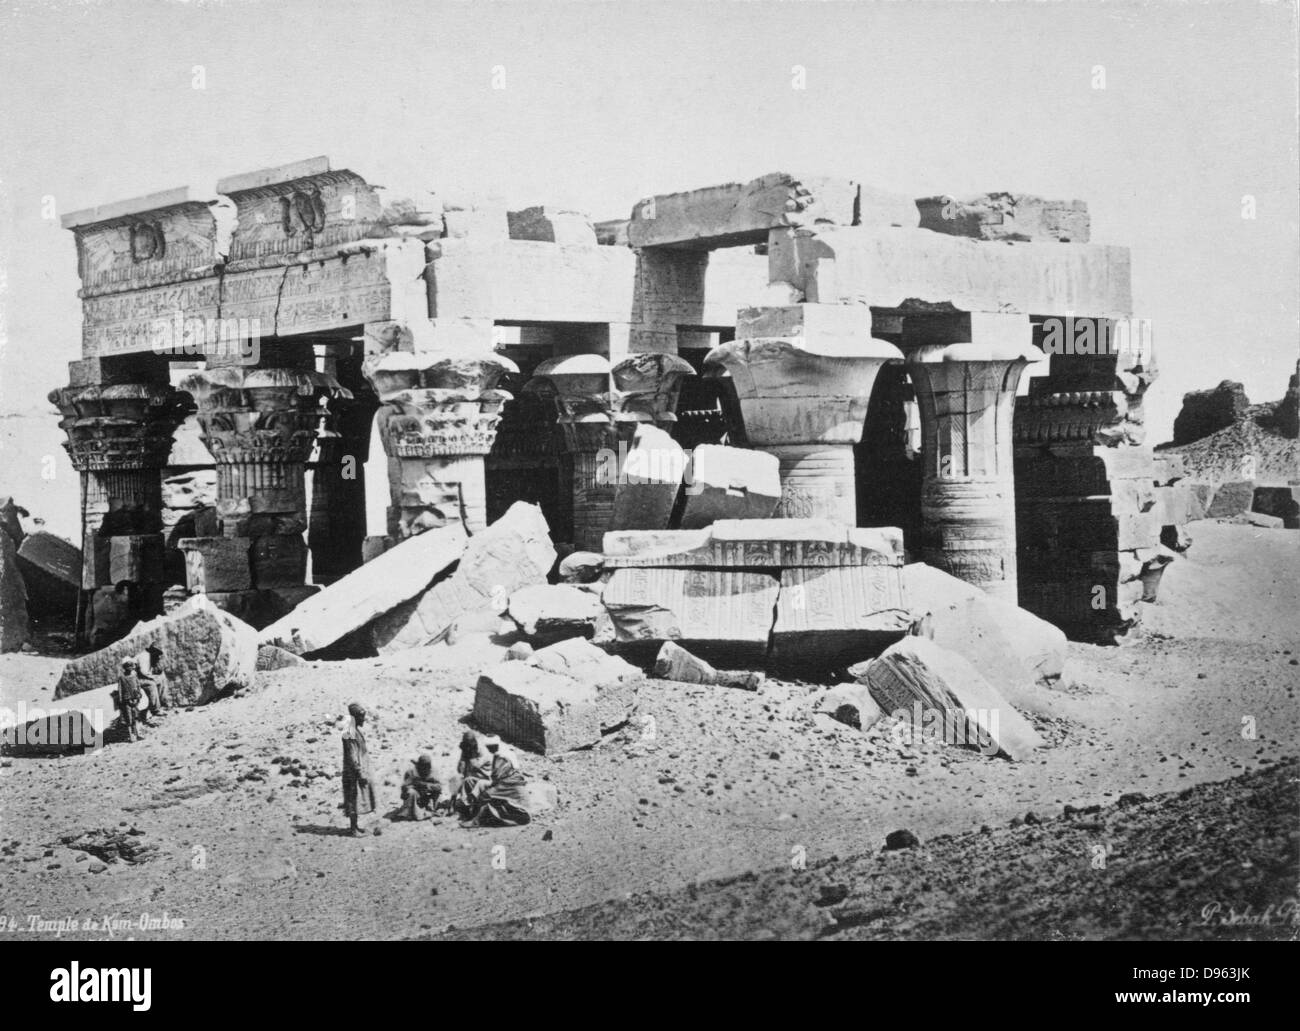 Hellenistic temple at Kom Ombo, Egypt - Stock Image